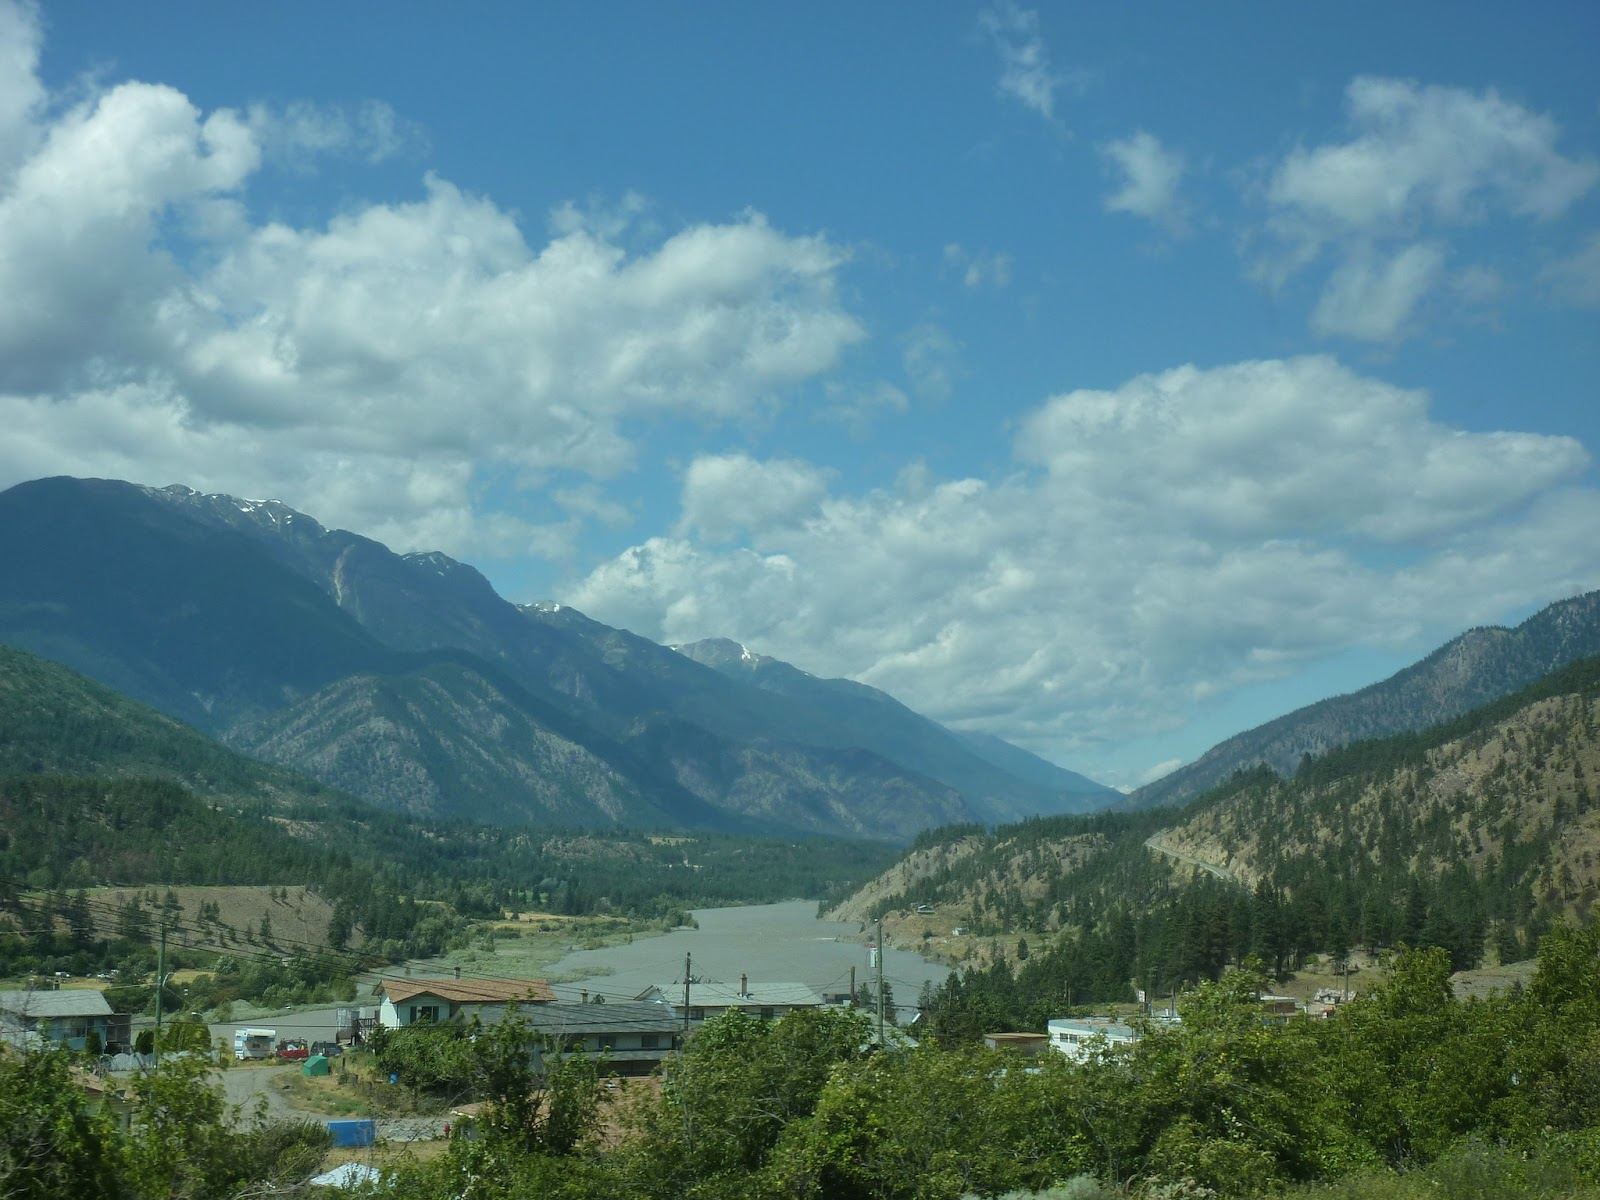 The Village of Lytton, British Columbia.